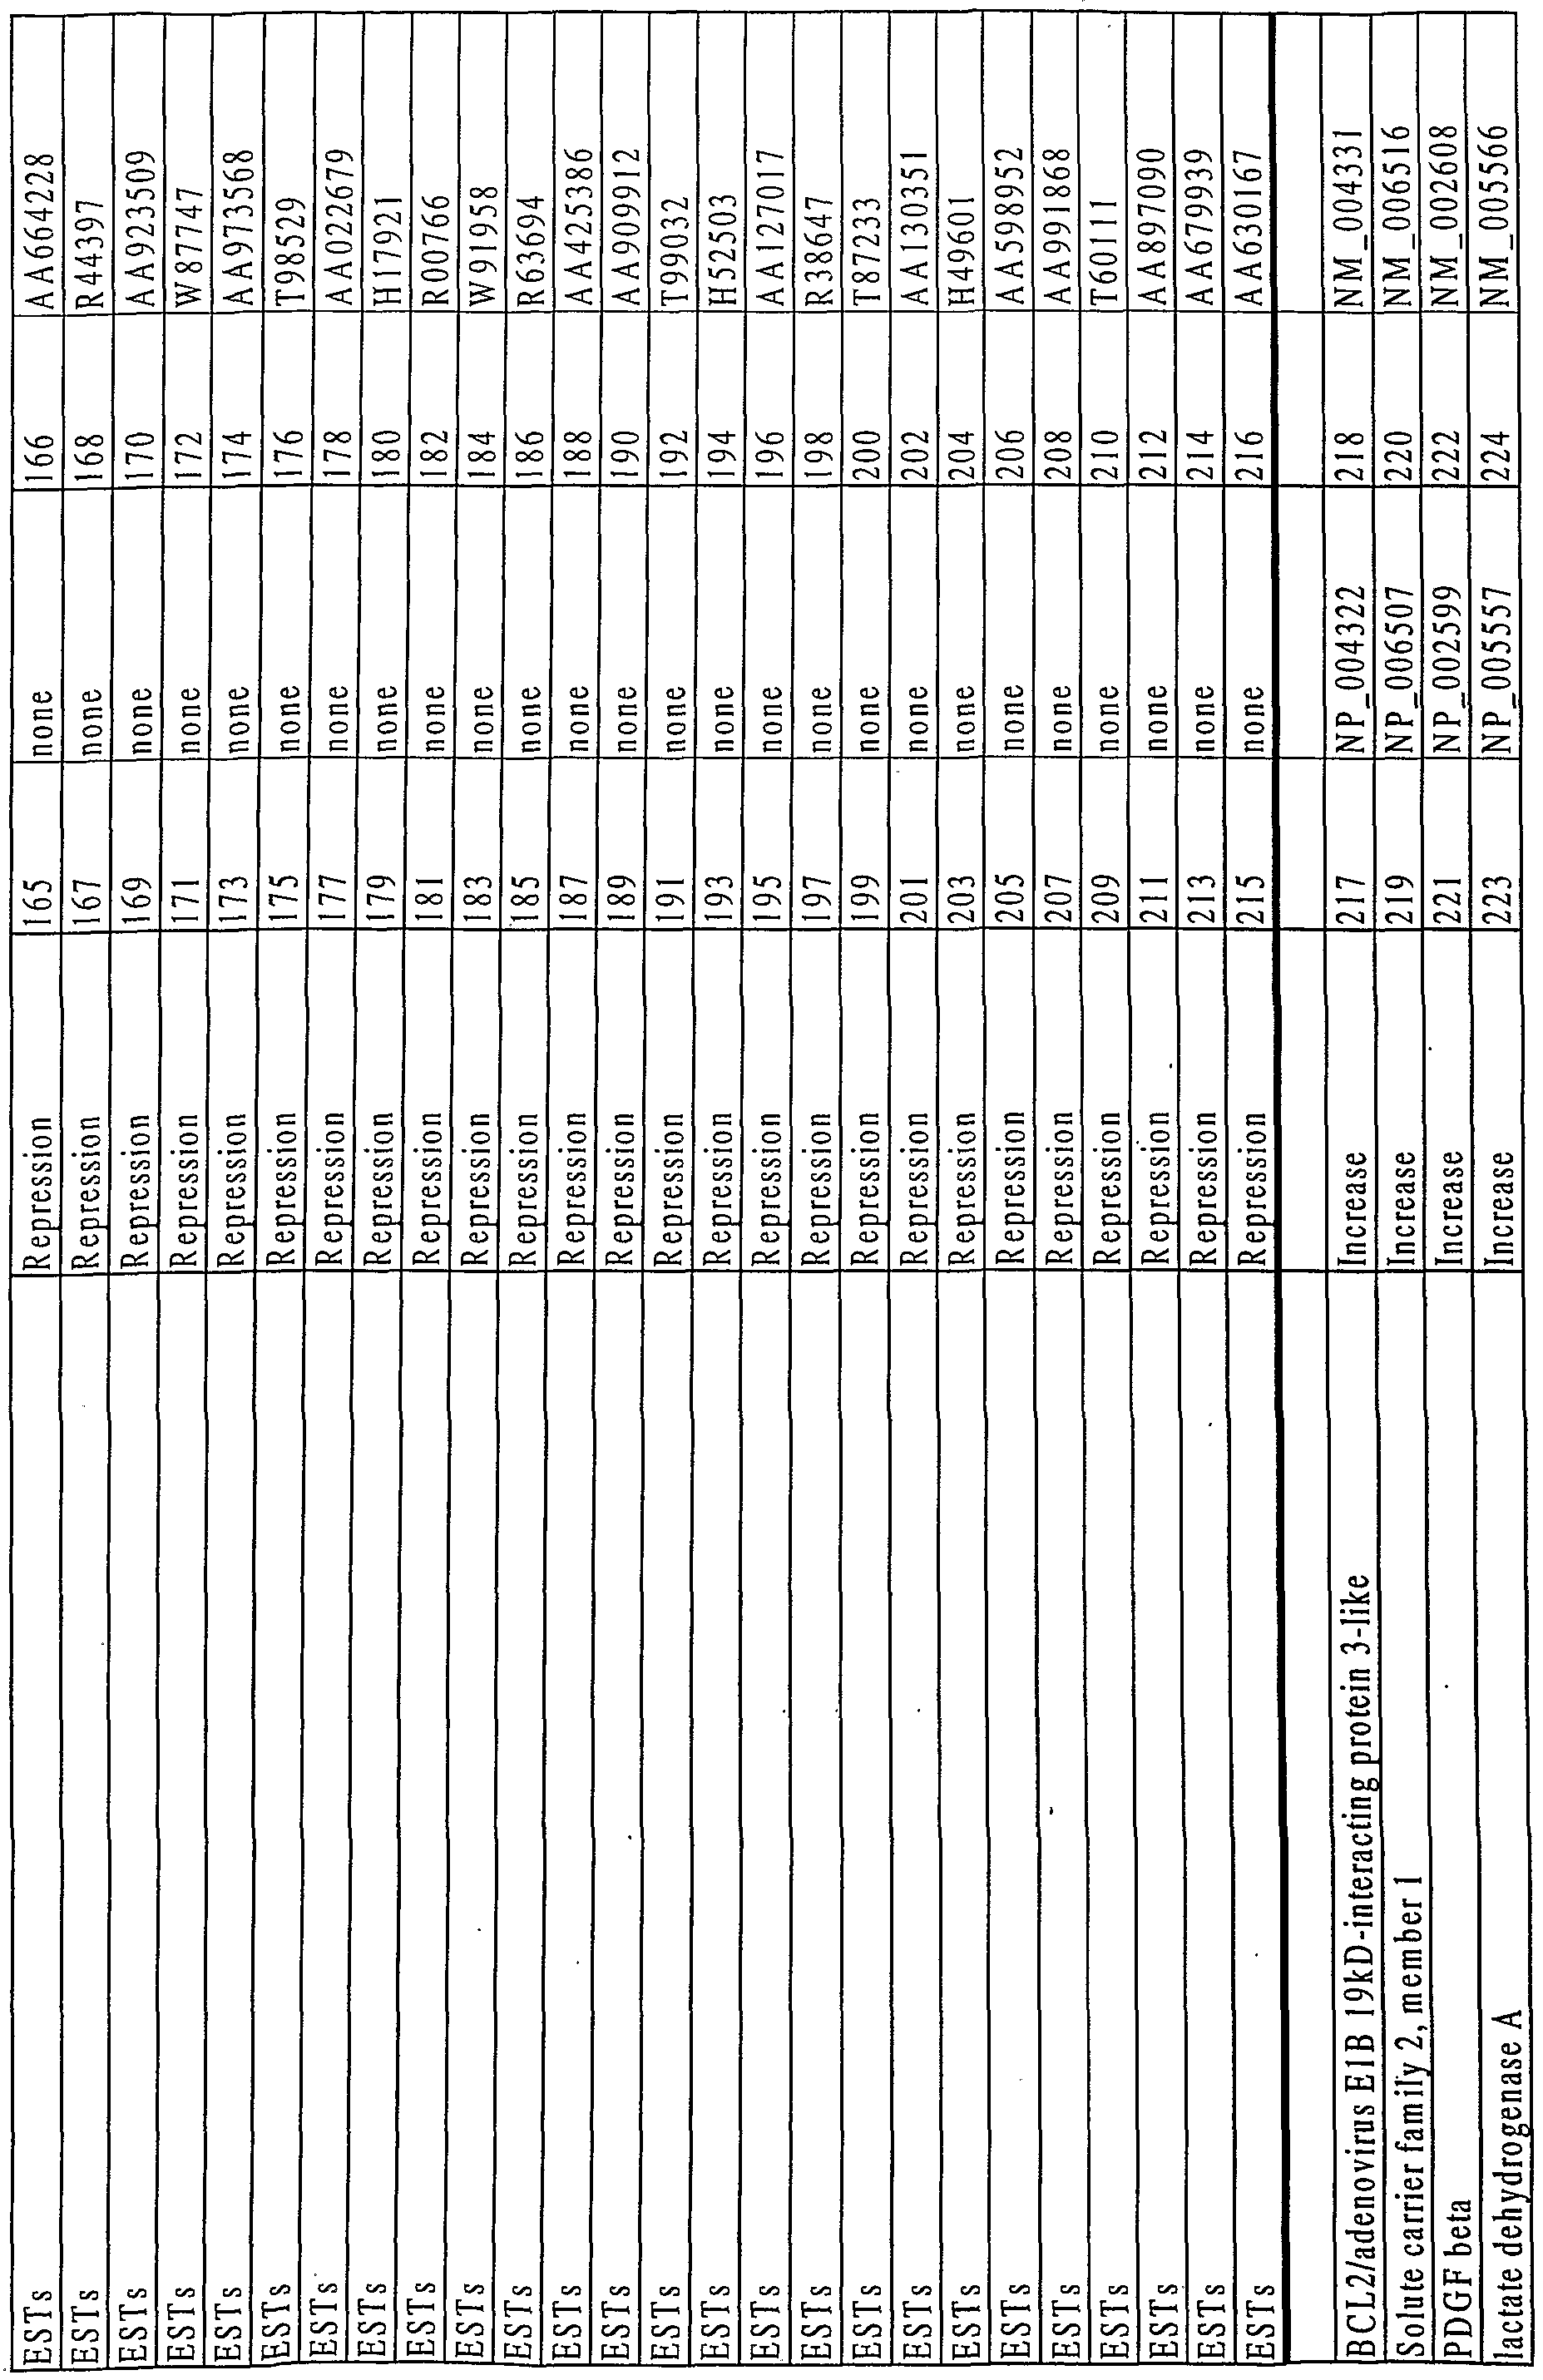 WO2002046465A2 - Method for identification of genes involved